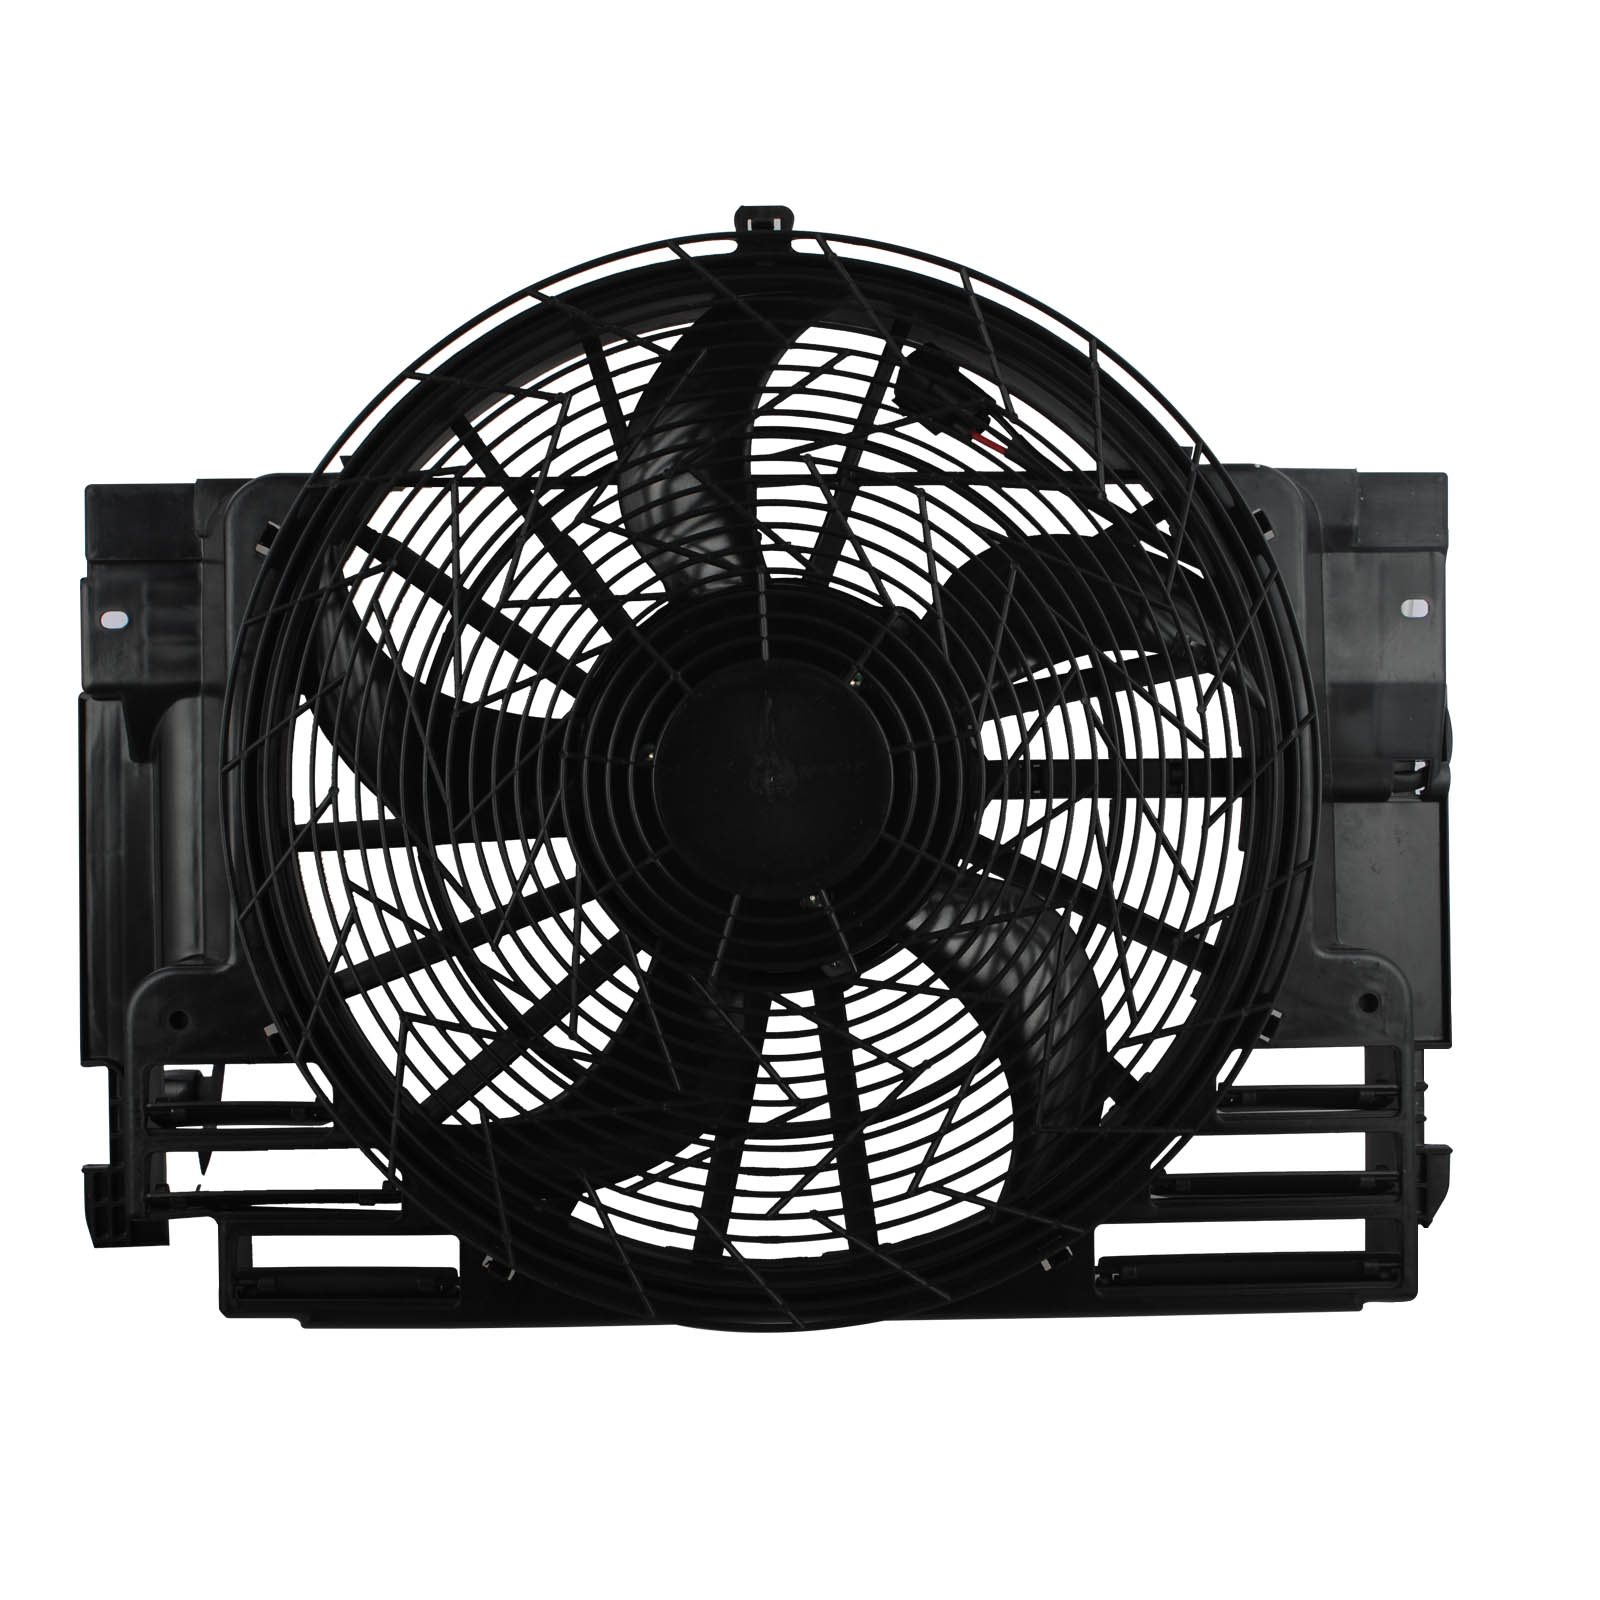 Condenser Thermo Fan Motor Assembly Fit For BMW E53 X5 2000-2006 Petrol image